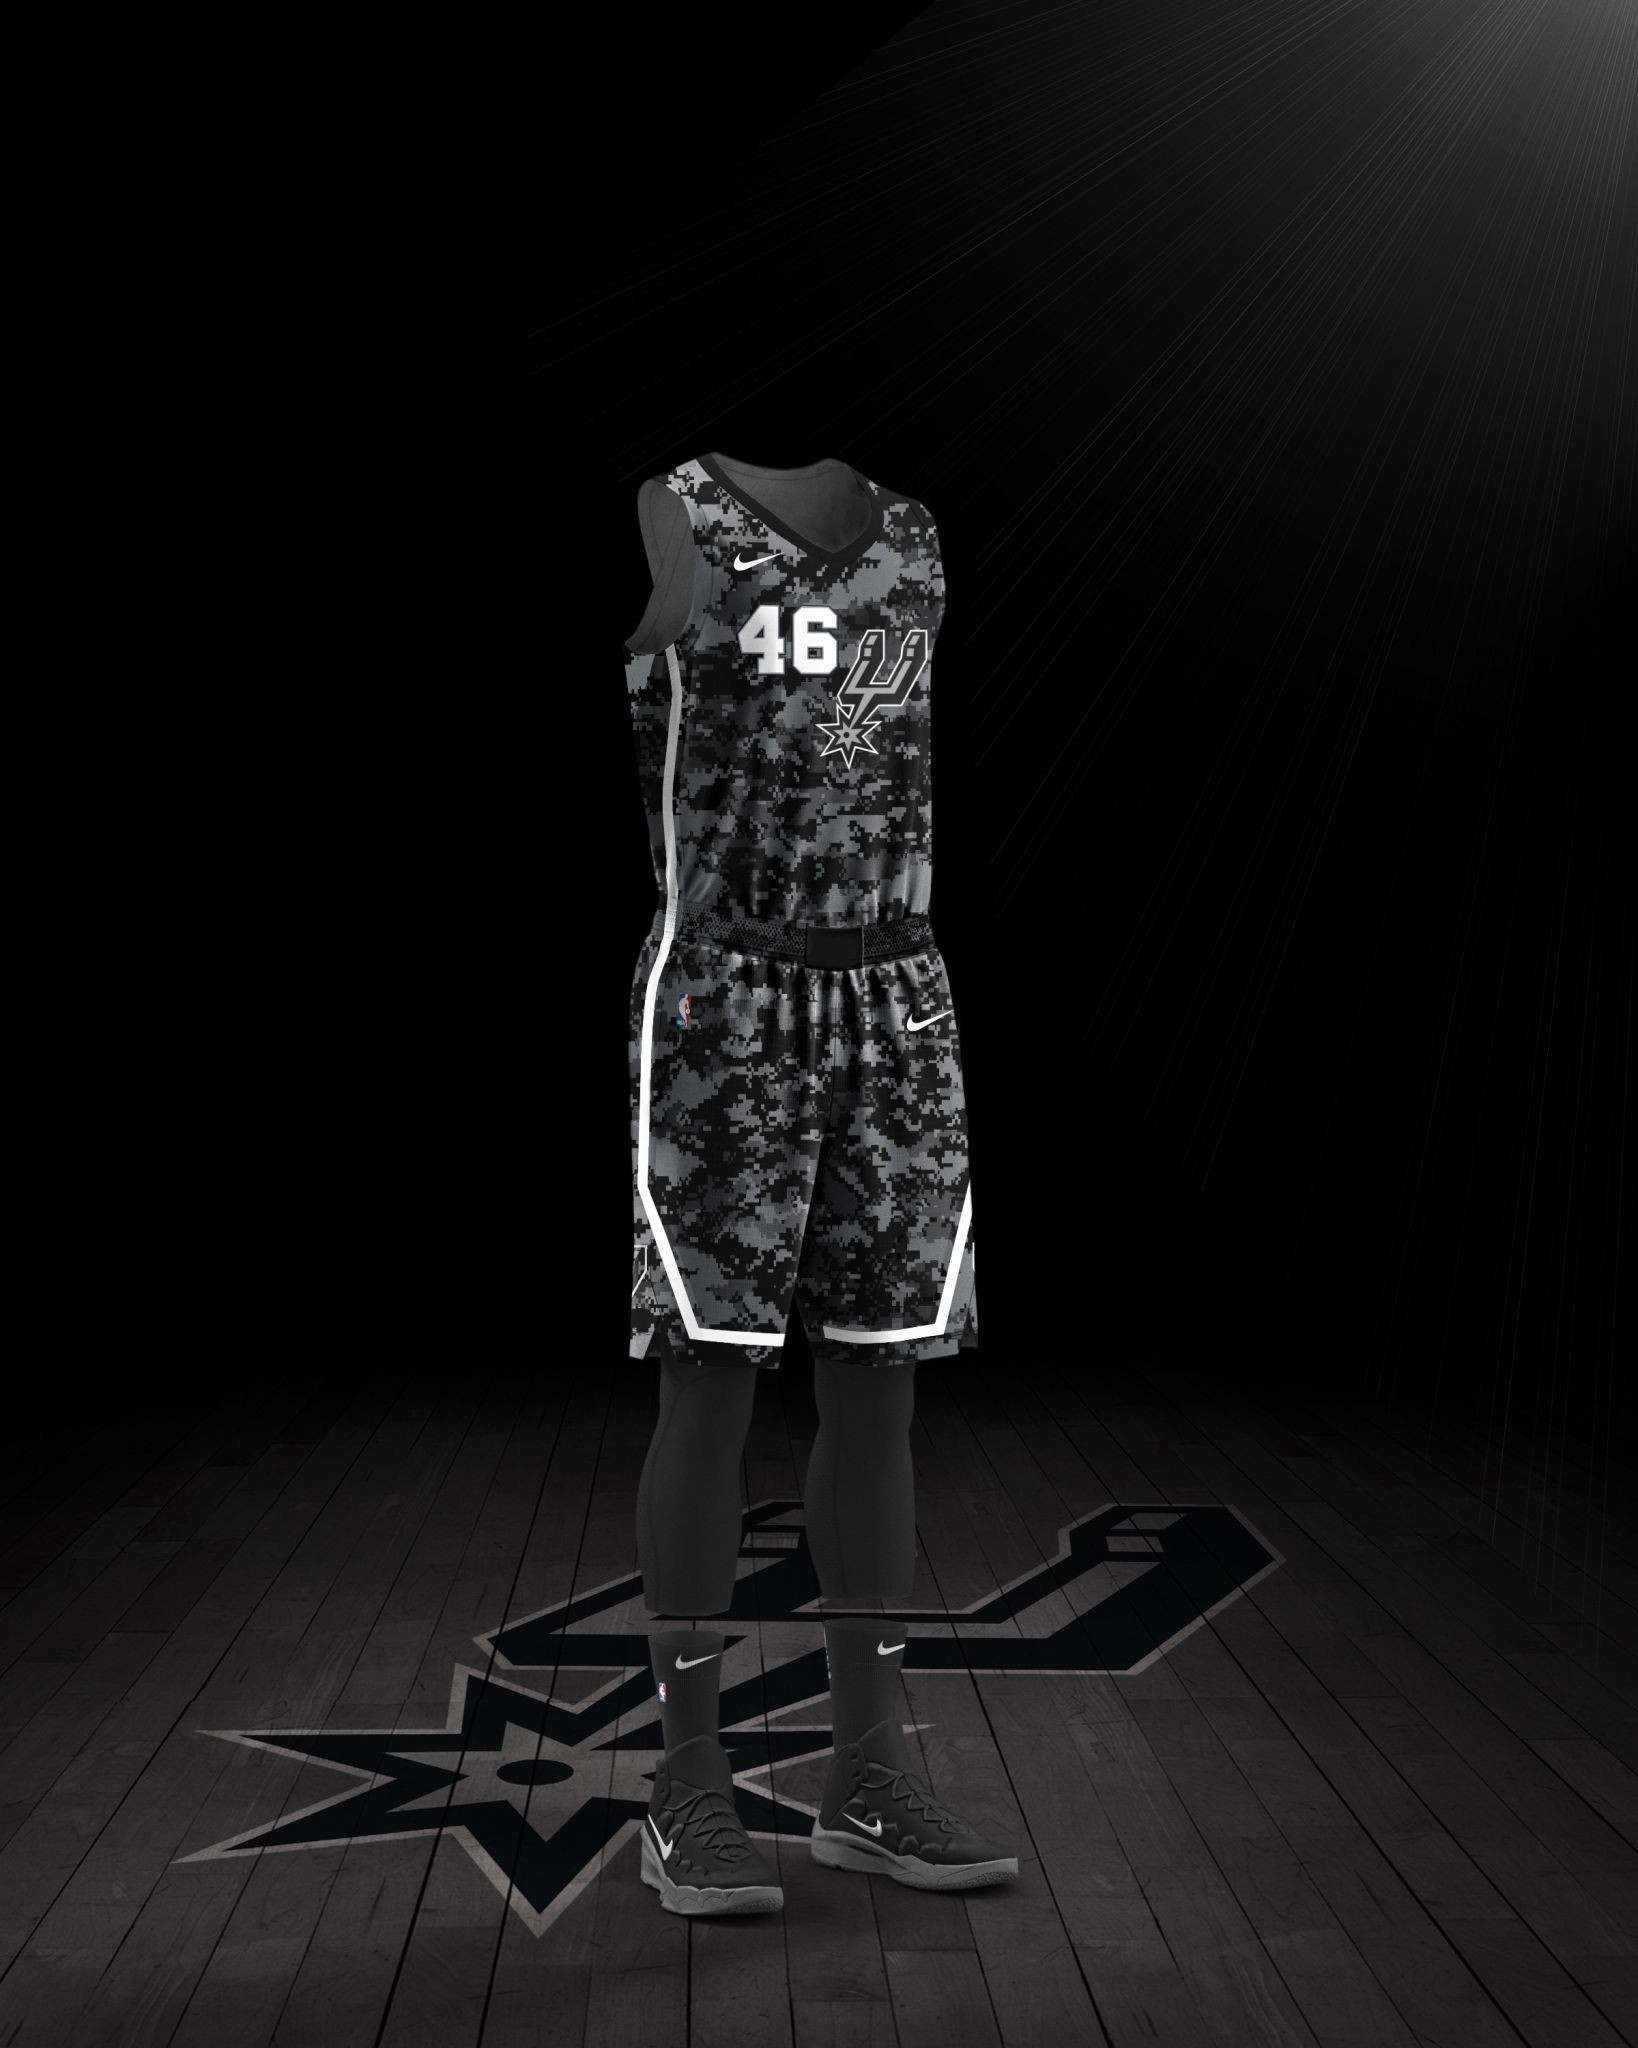 Spurs announce another camouflage jersey as this season s Nike City Edition  uniform 1d6fa44c2